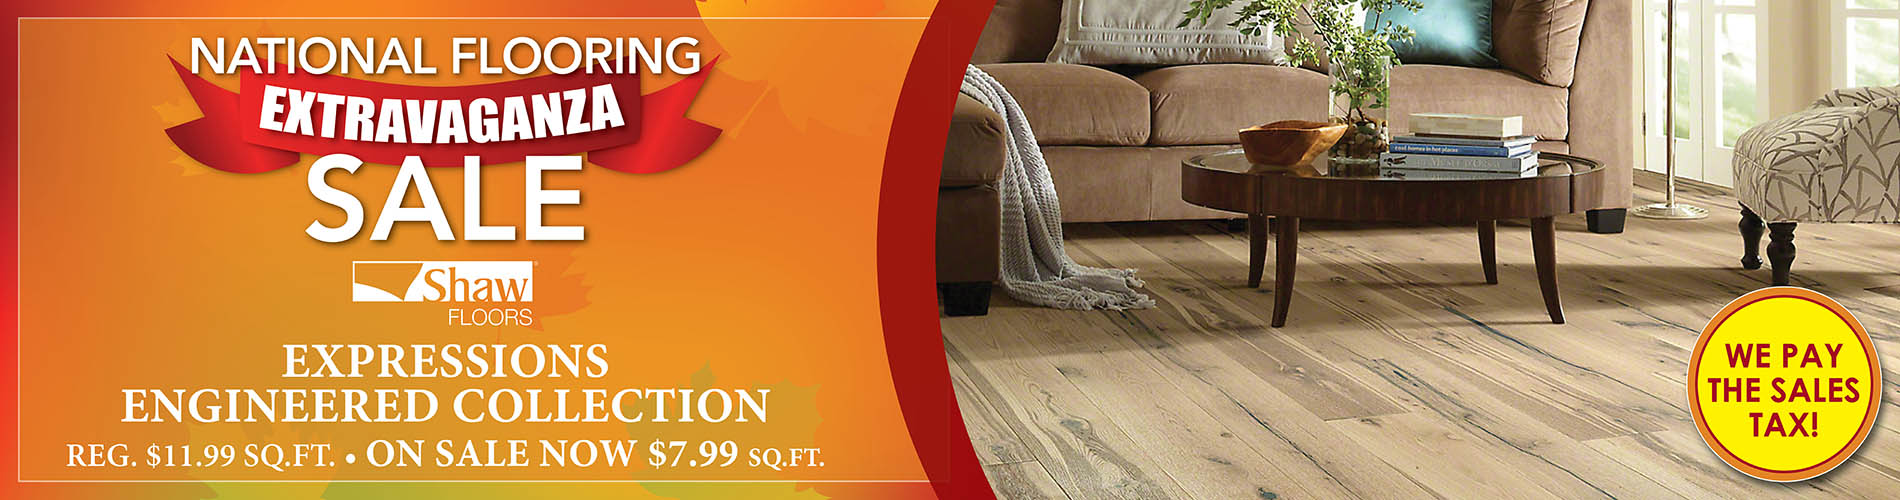 National Flooring Extravaganza Sale going on now! Shaw Expressions Engineered Collection on sale for only $7.99 sq.ft. - Only at Fine Floorz in Walnut Creek, California!